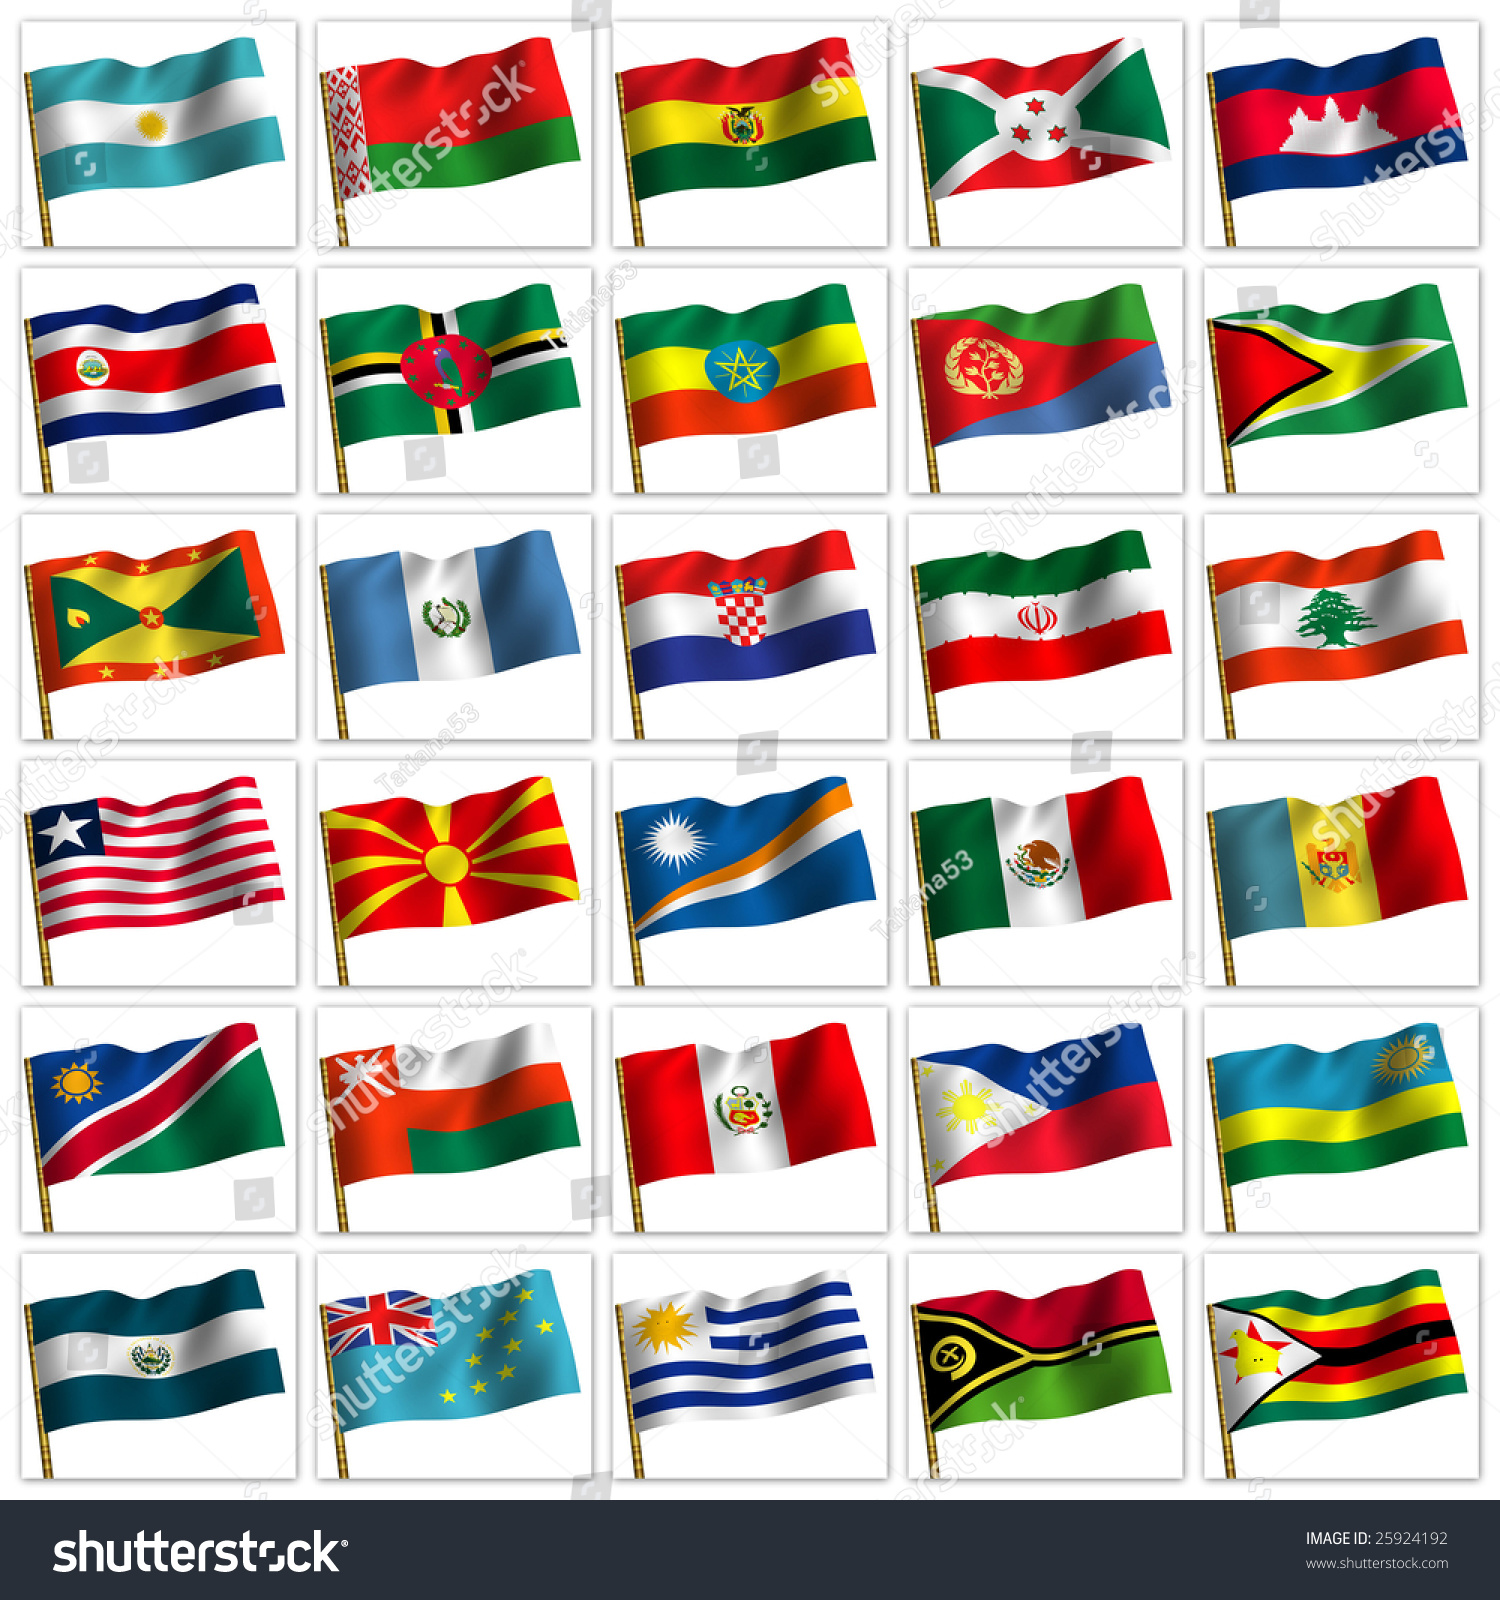 Collage Flags Different Countries World Icon Stock Illustration ...